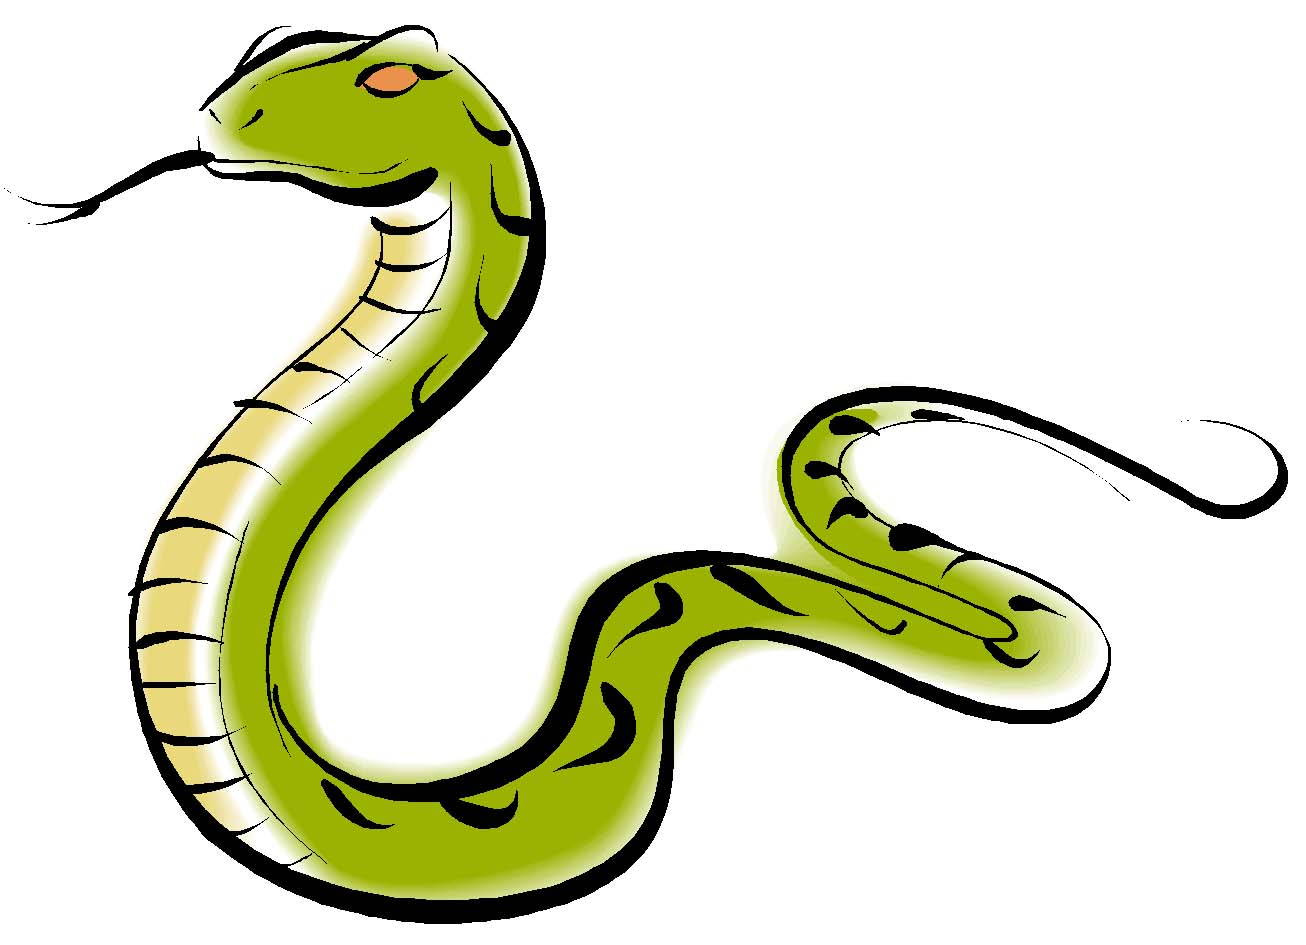 Grass Snake clipart #18, Download drawings